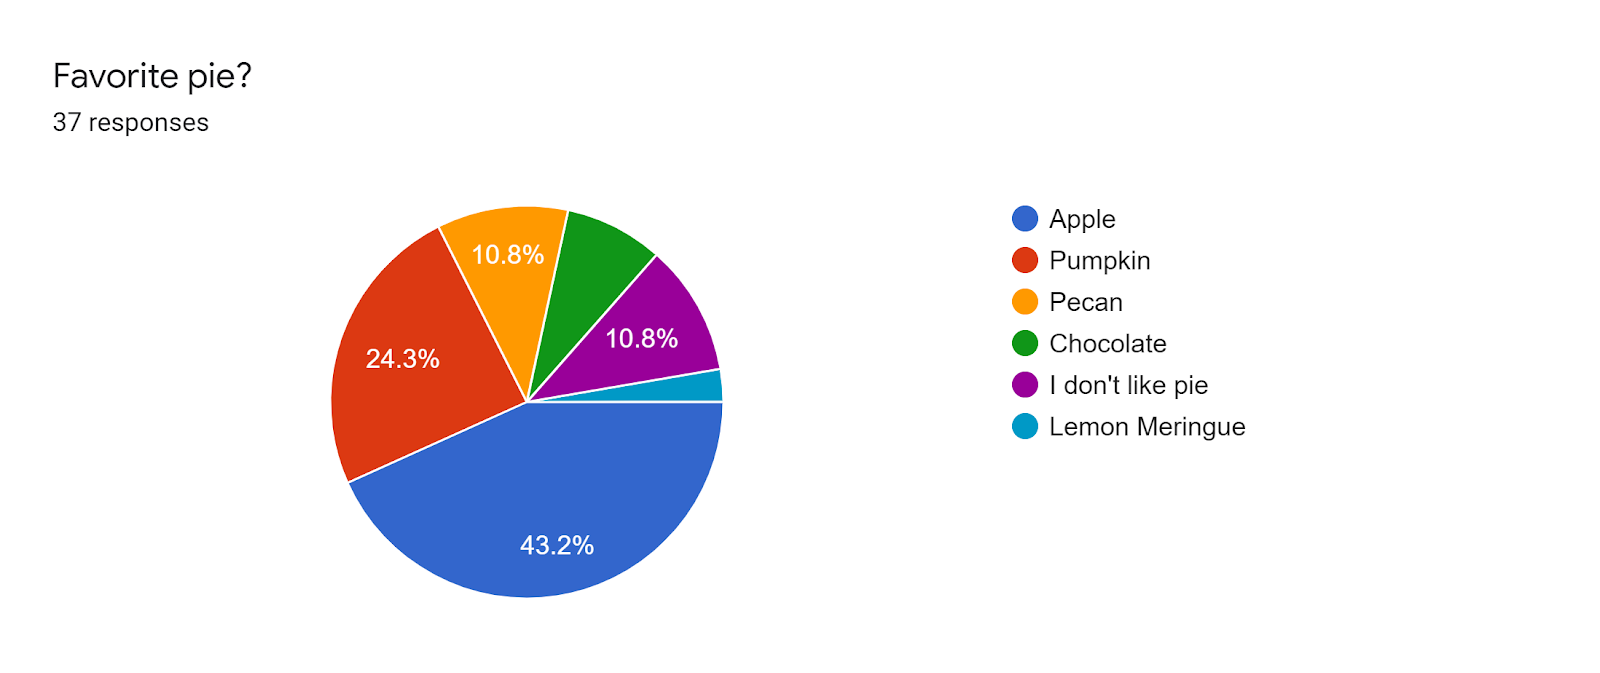 Forms response chart. Question title: Favorite pie?. Number of responses: 37 responses.